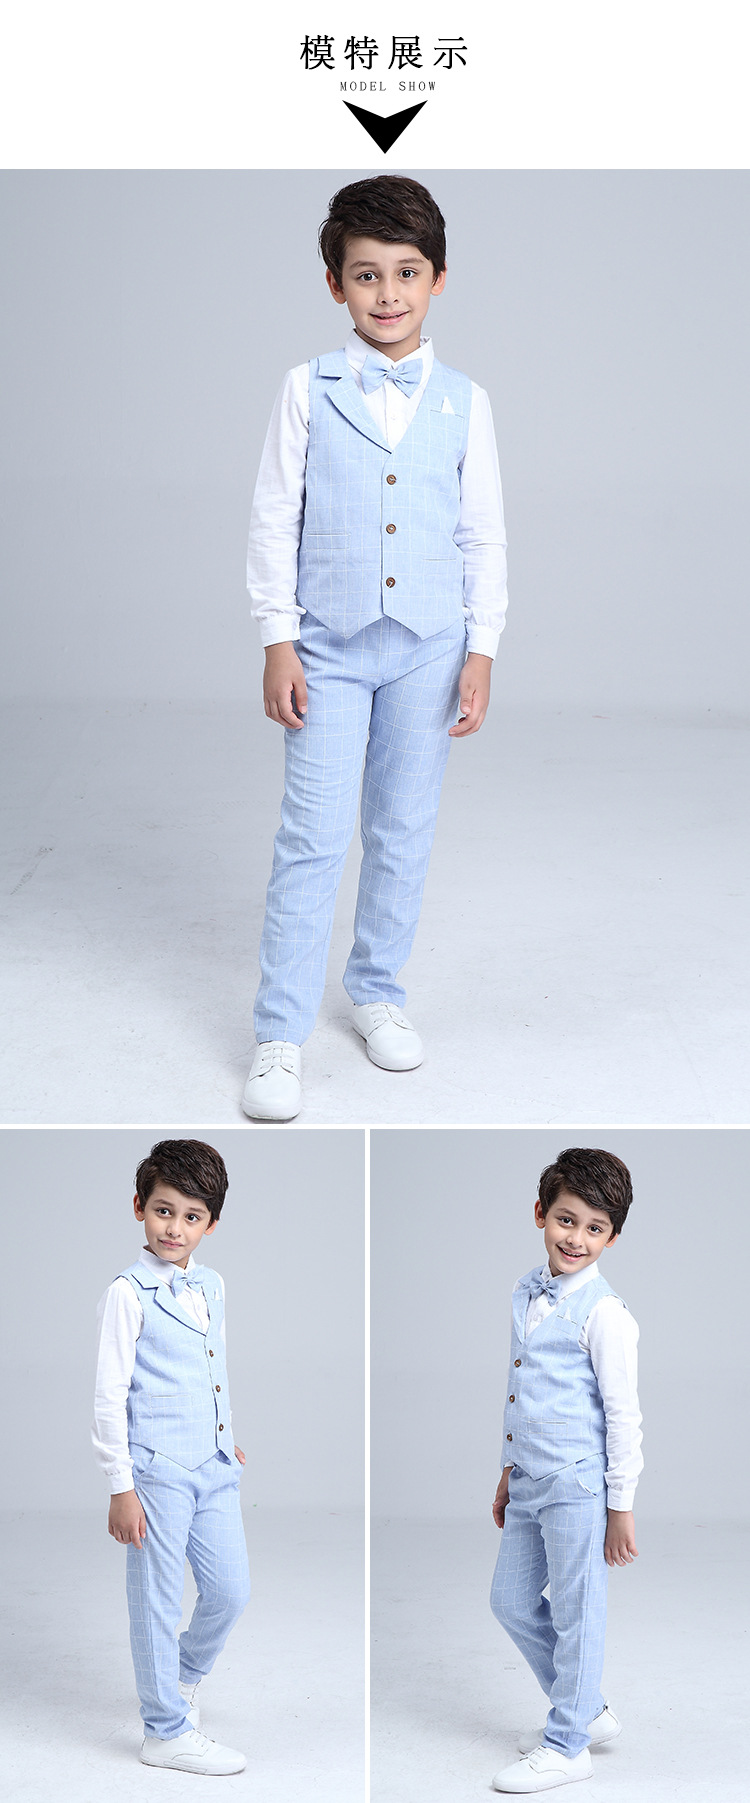 HTB11oanQXXXXXaoaXXXq6xXFXXXg - 2017 Boys Blazer Suit Kids Cotton Vest+Tie+Blouse+Pants 4 pieces/set Clothes Sets Boys Formal Blazers for Weddings Party EB156